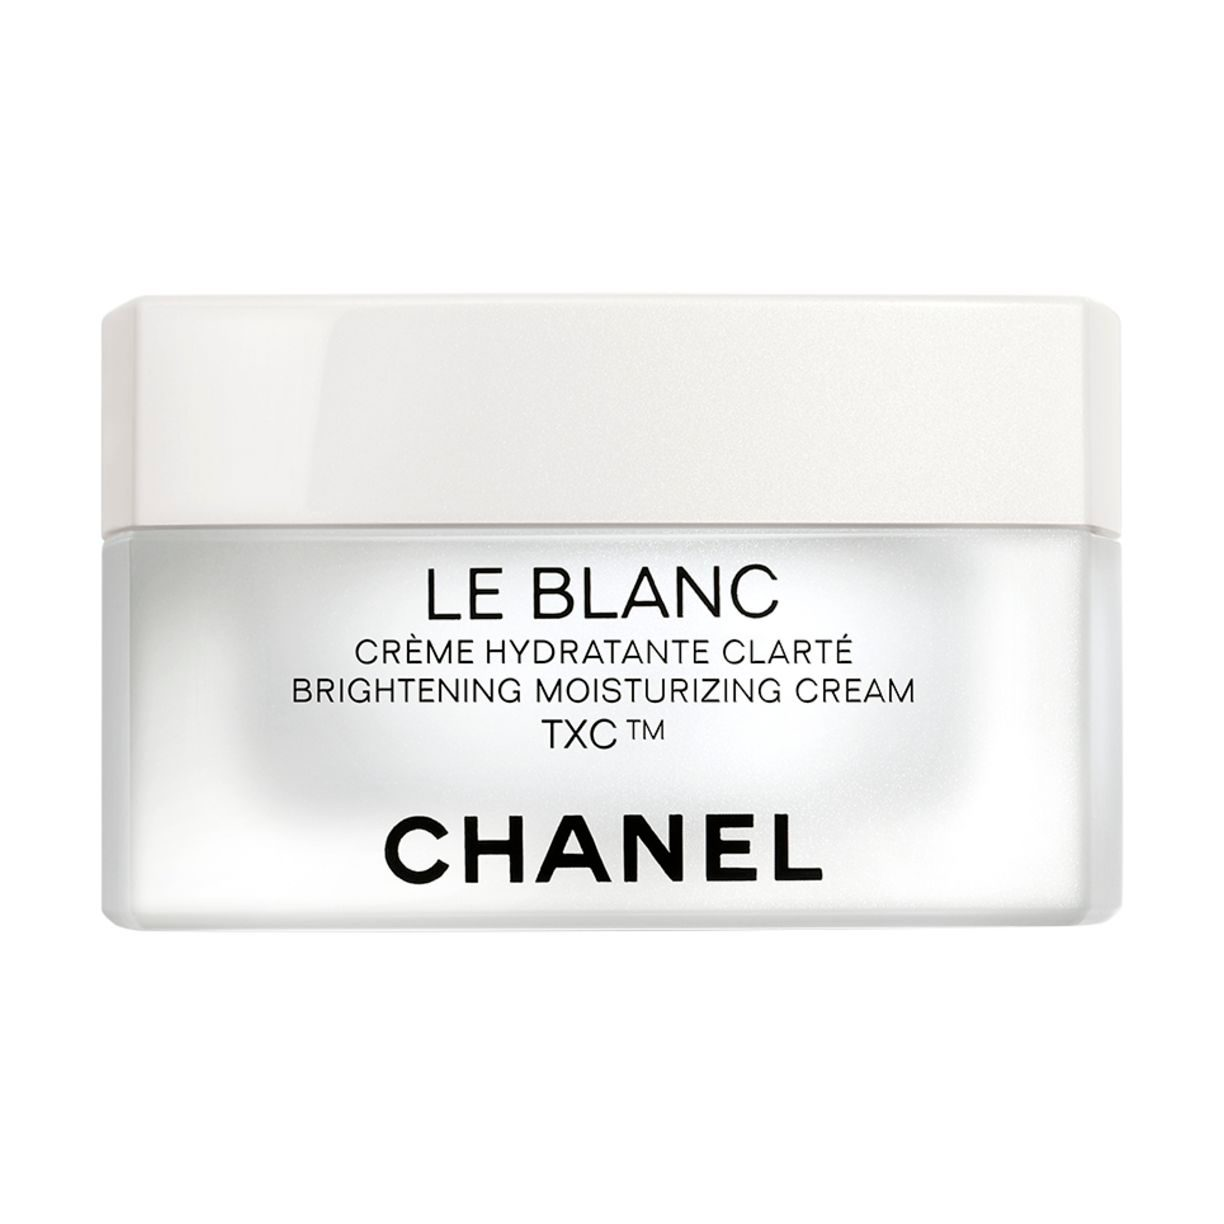 LE BLANC BRIGHTENING MOISTURIZING CREAM TXC 48g